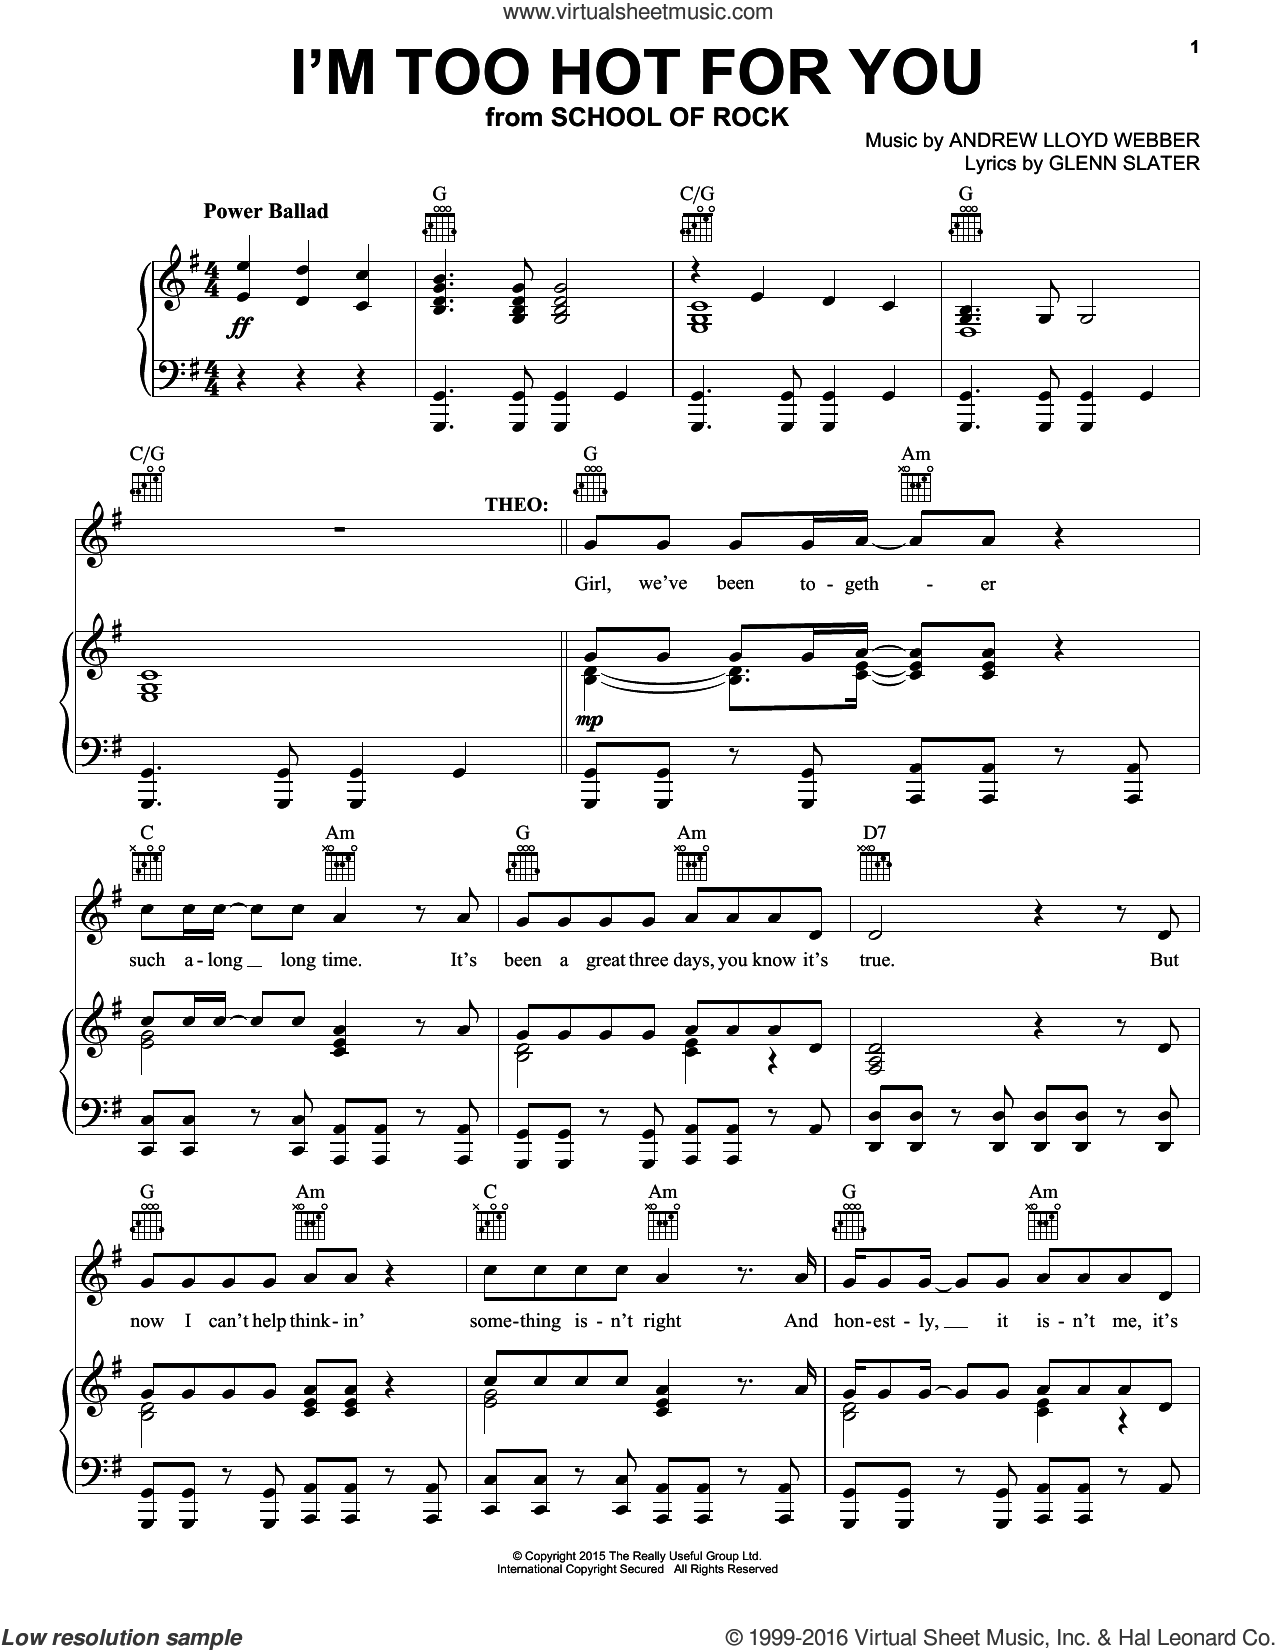 I'm Too Hot For You sheet music for voice, piano or guitar by Glenn Slater and Andrew Lloyd Webber. Score Image Preview.